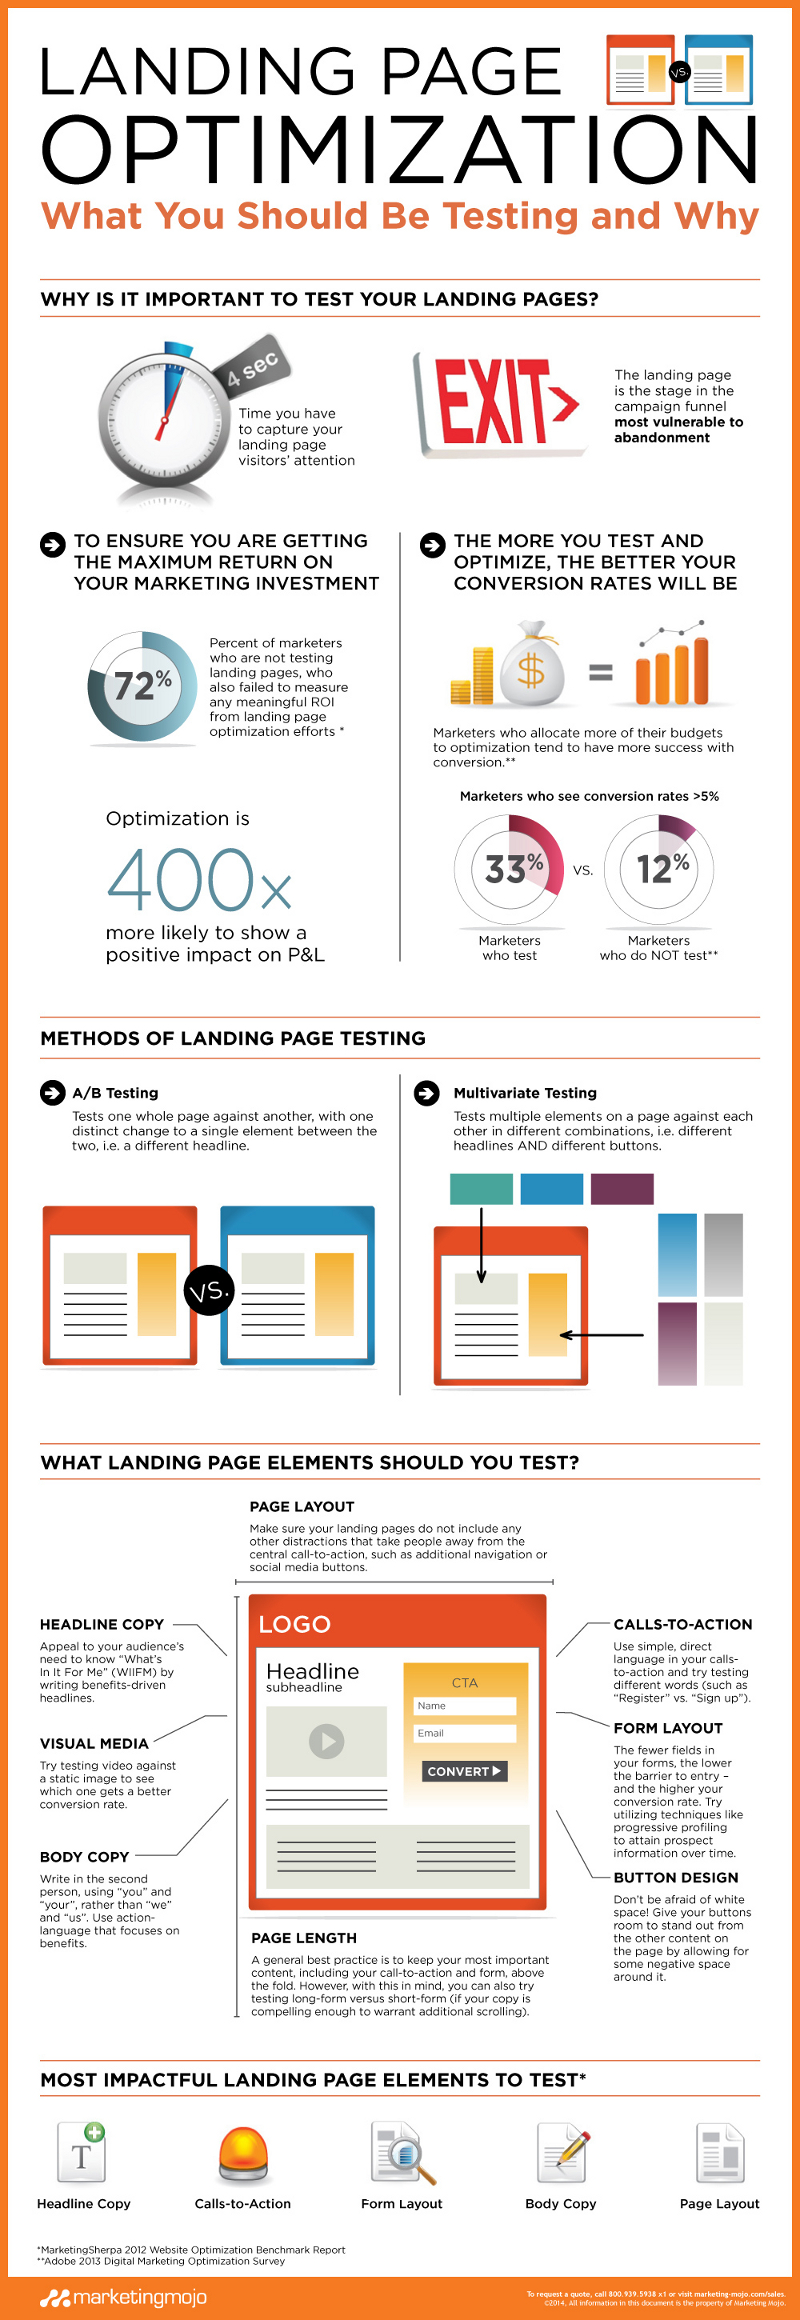 Optimizing Your Landing Page